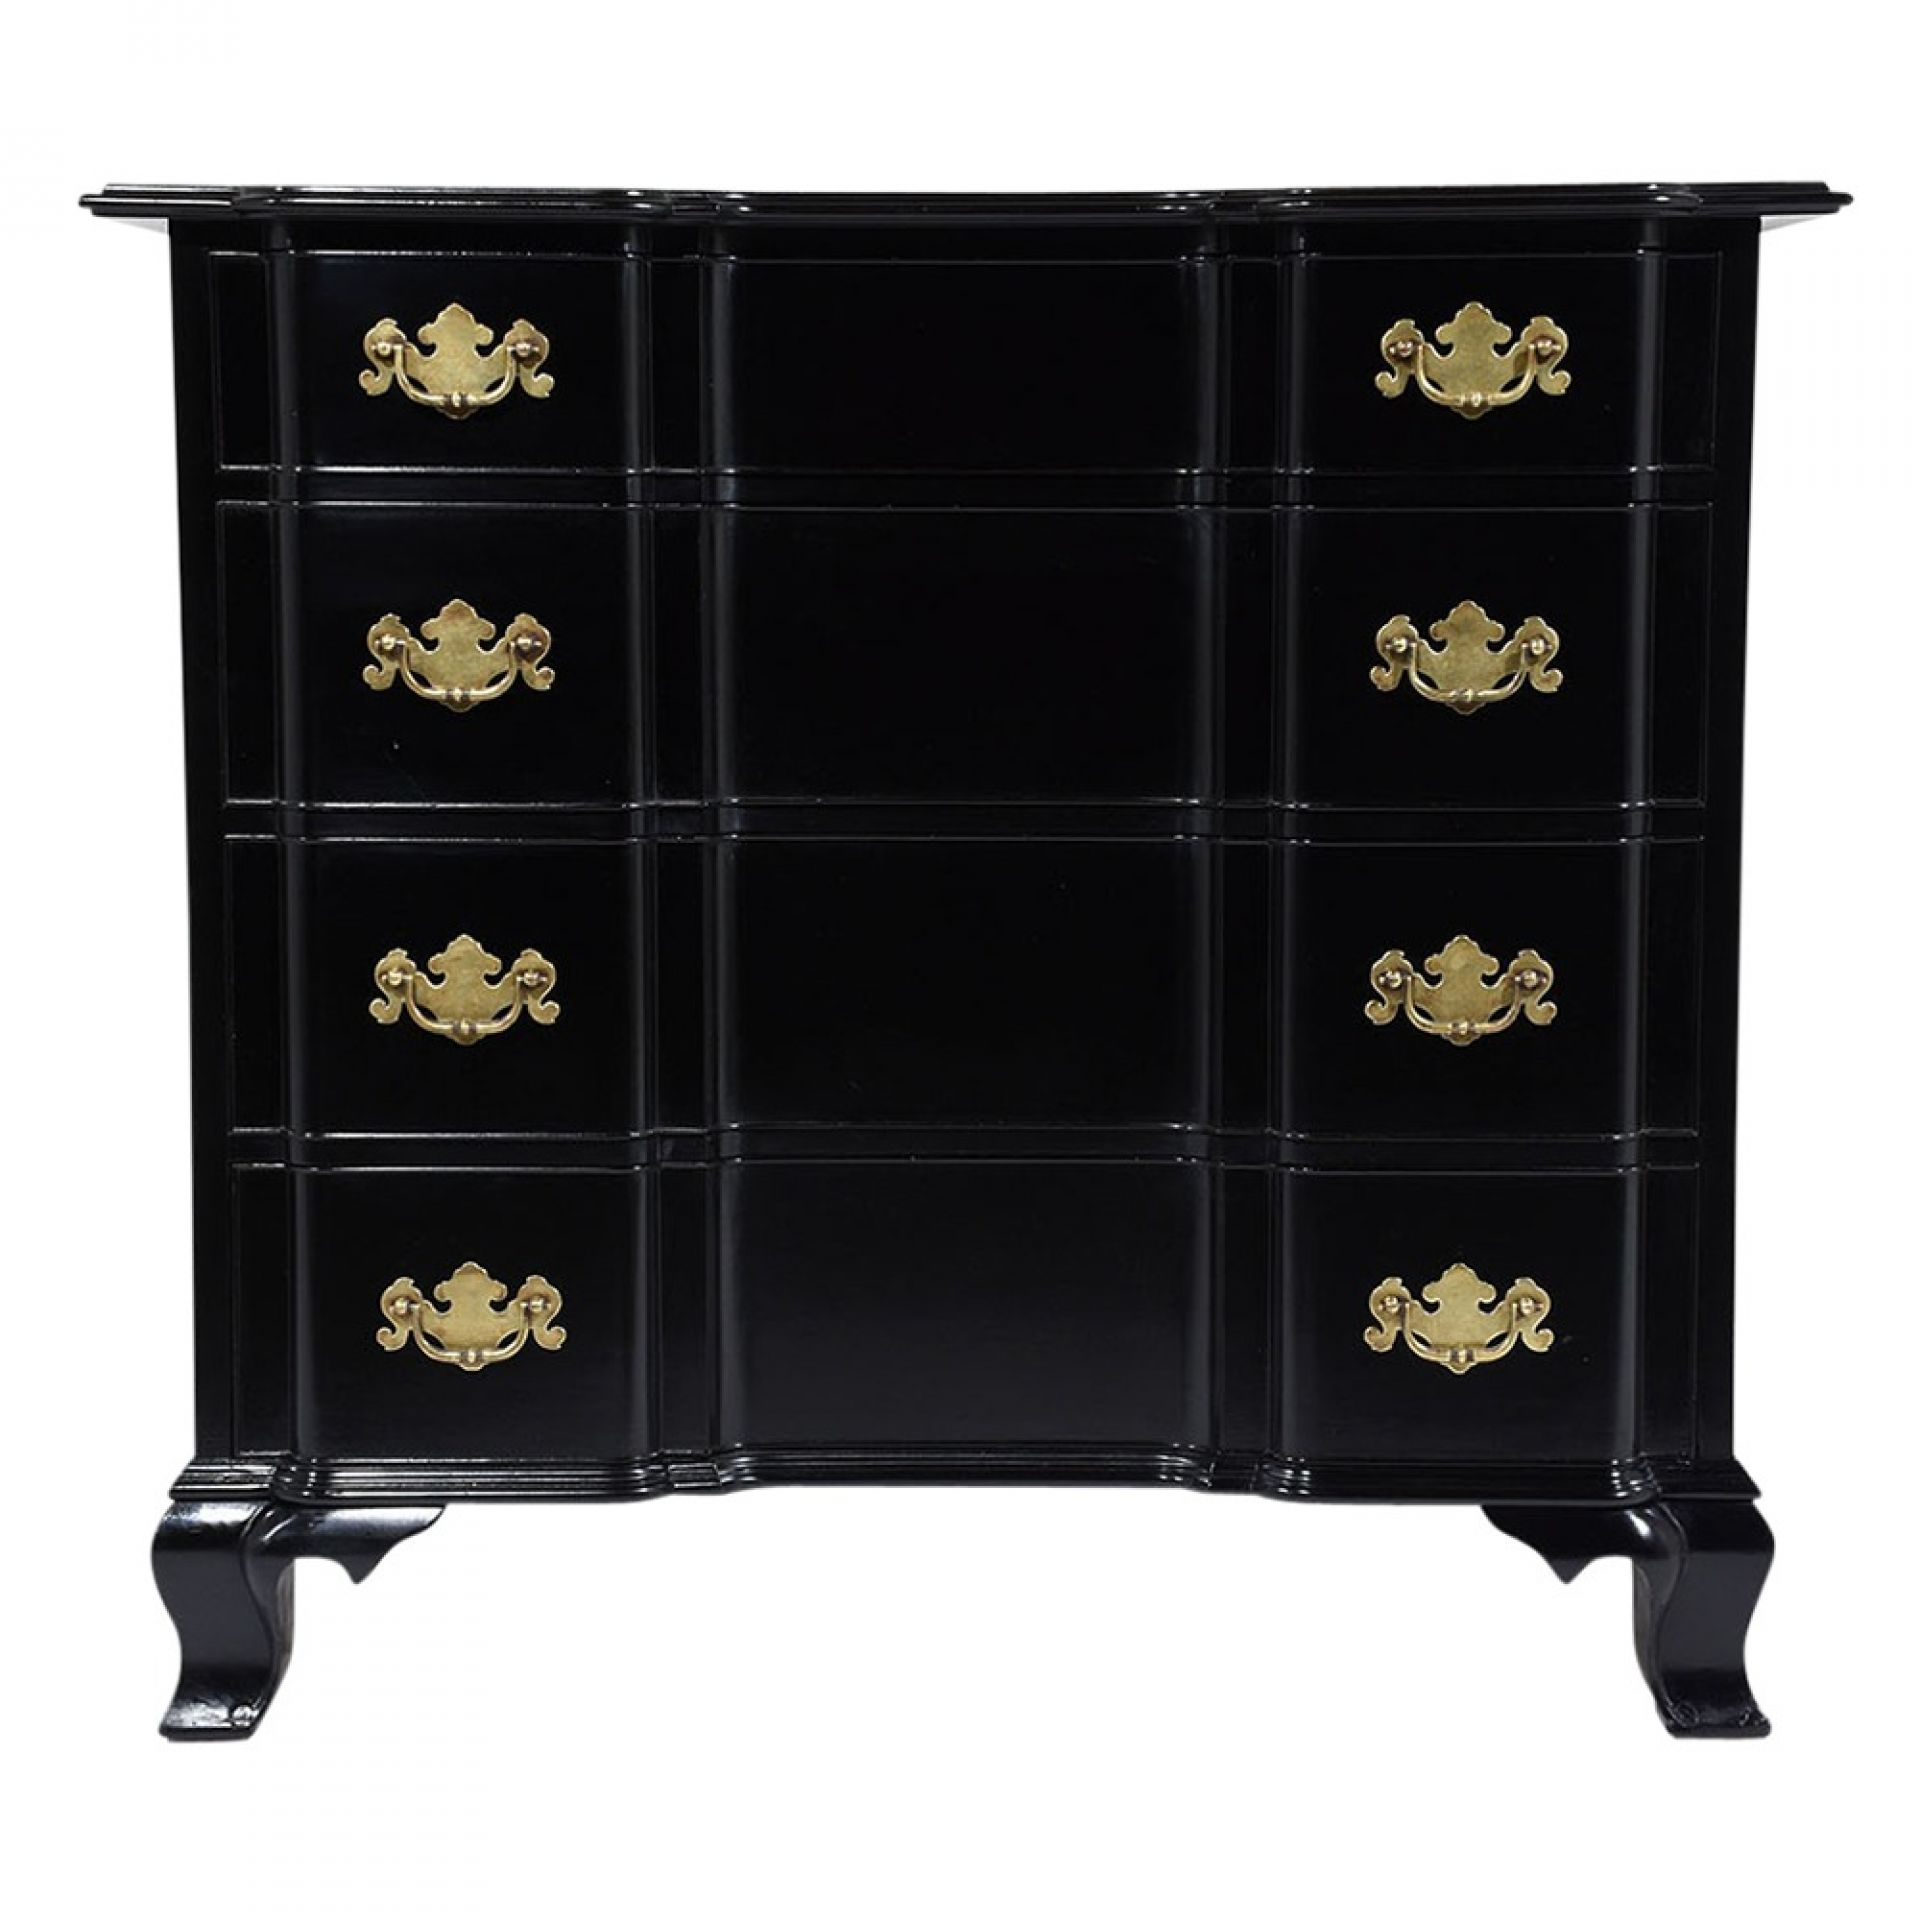 English-style Bachelor Chest of Drawers